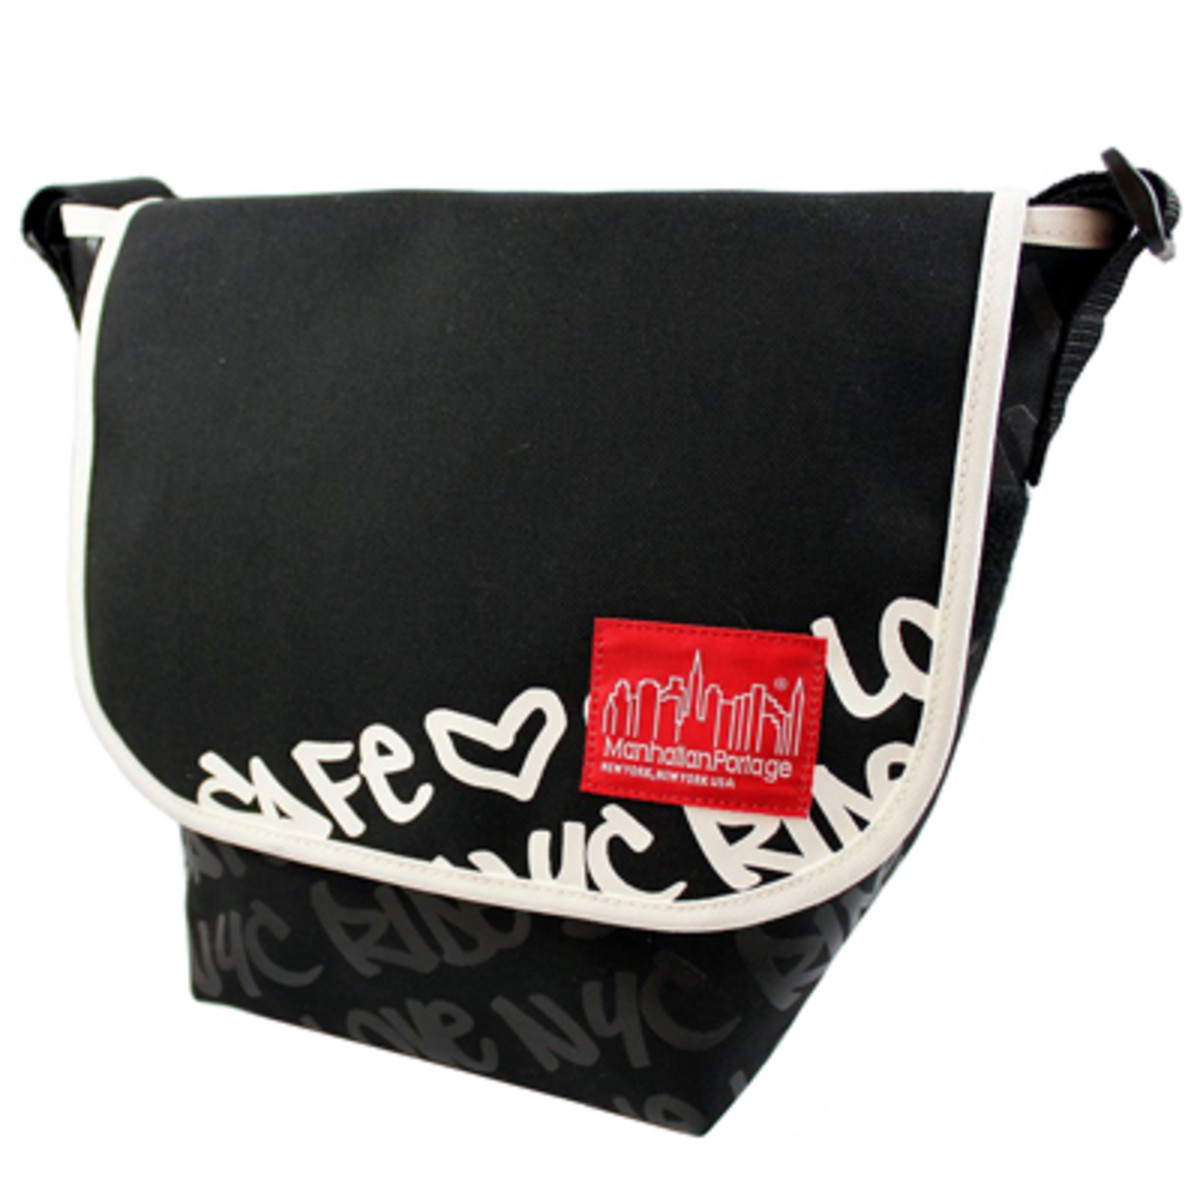 Graphic Message Casual Messenger Bag Large 5